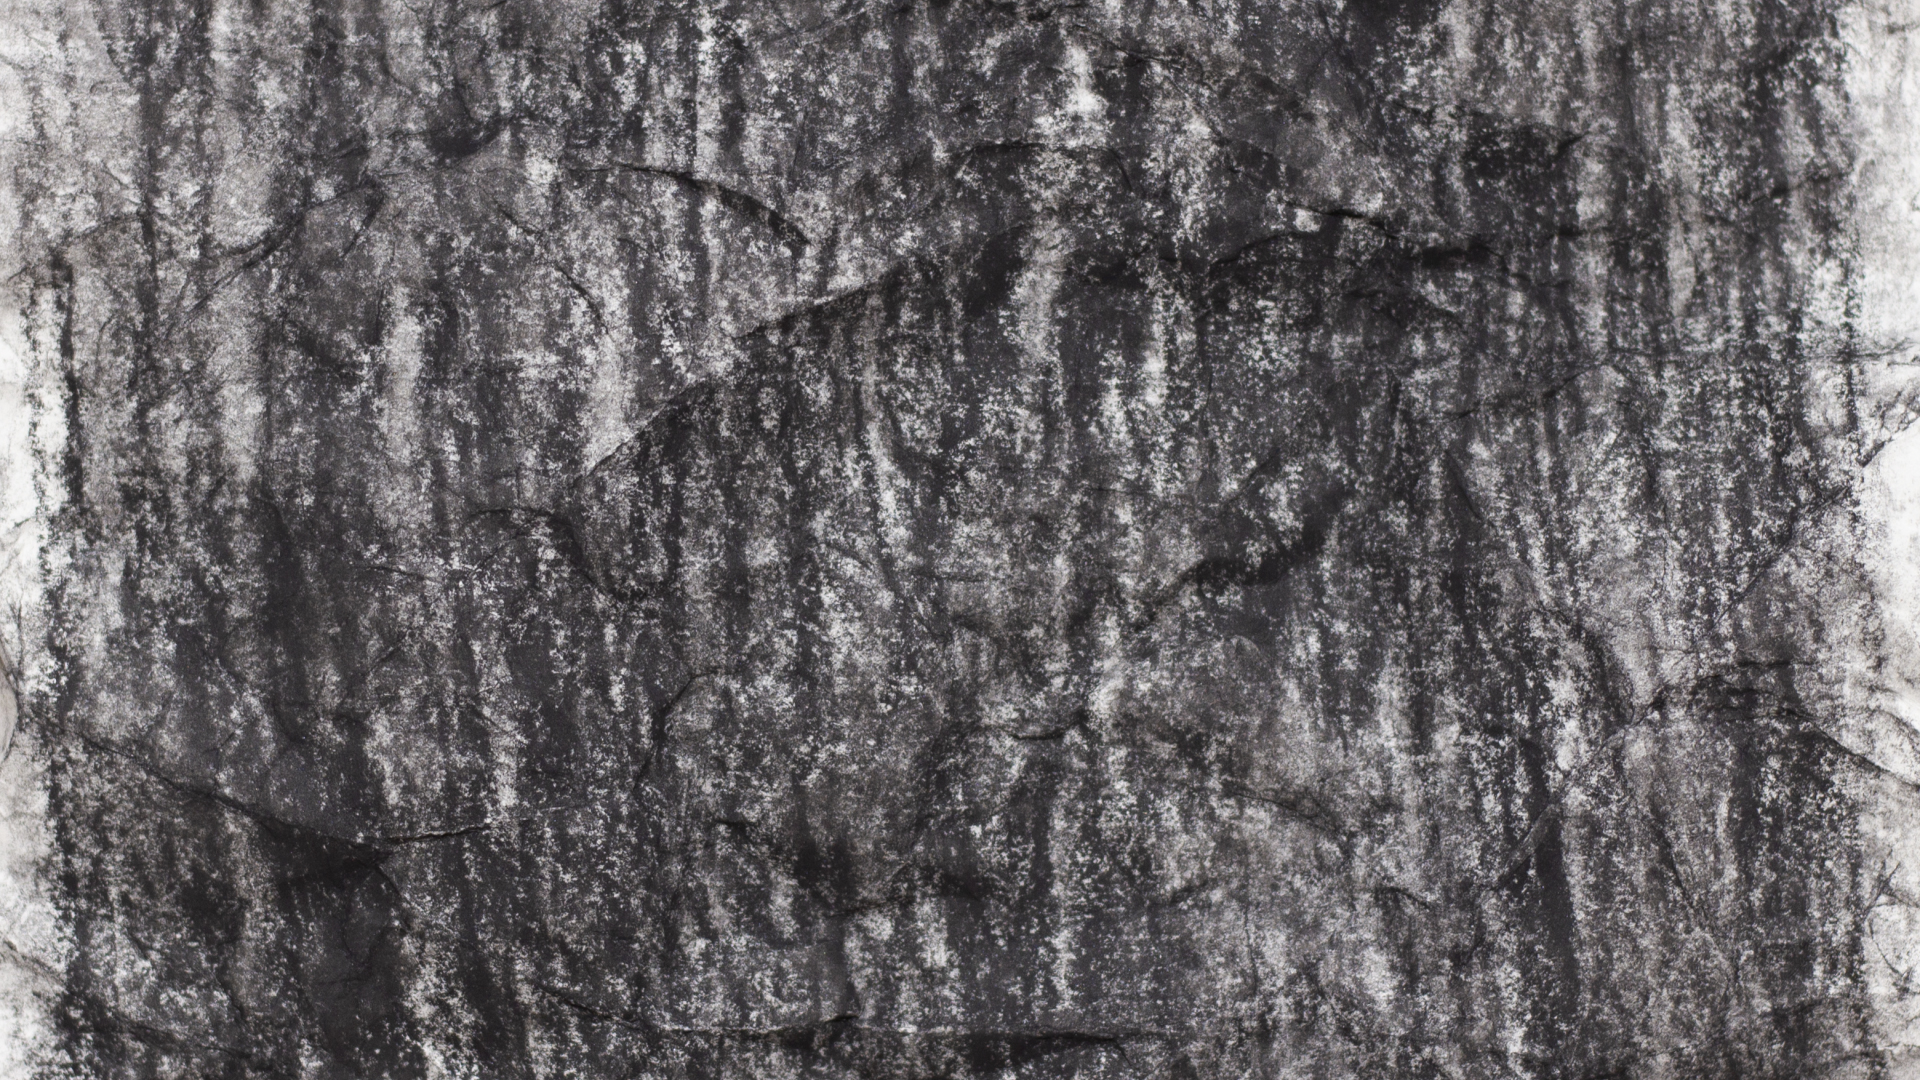 Rough Paper Charcoal texture 018